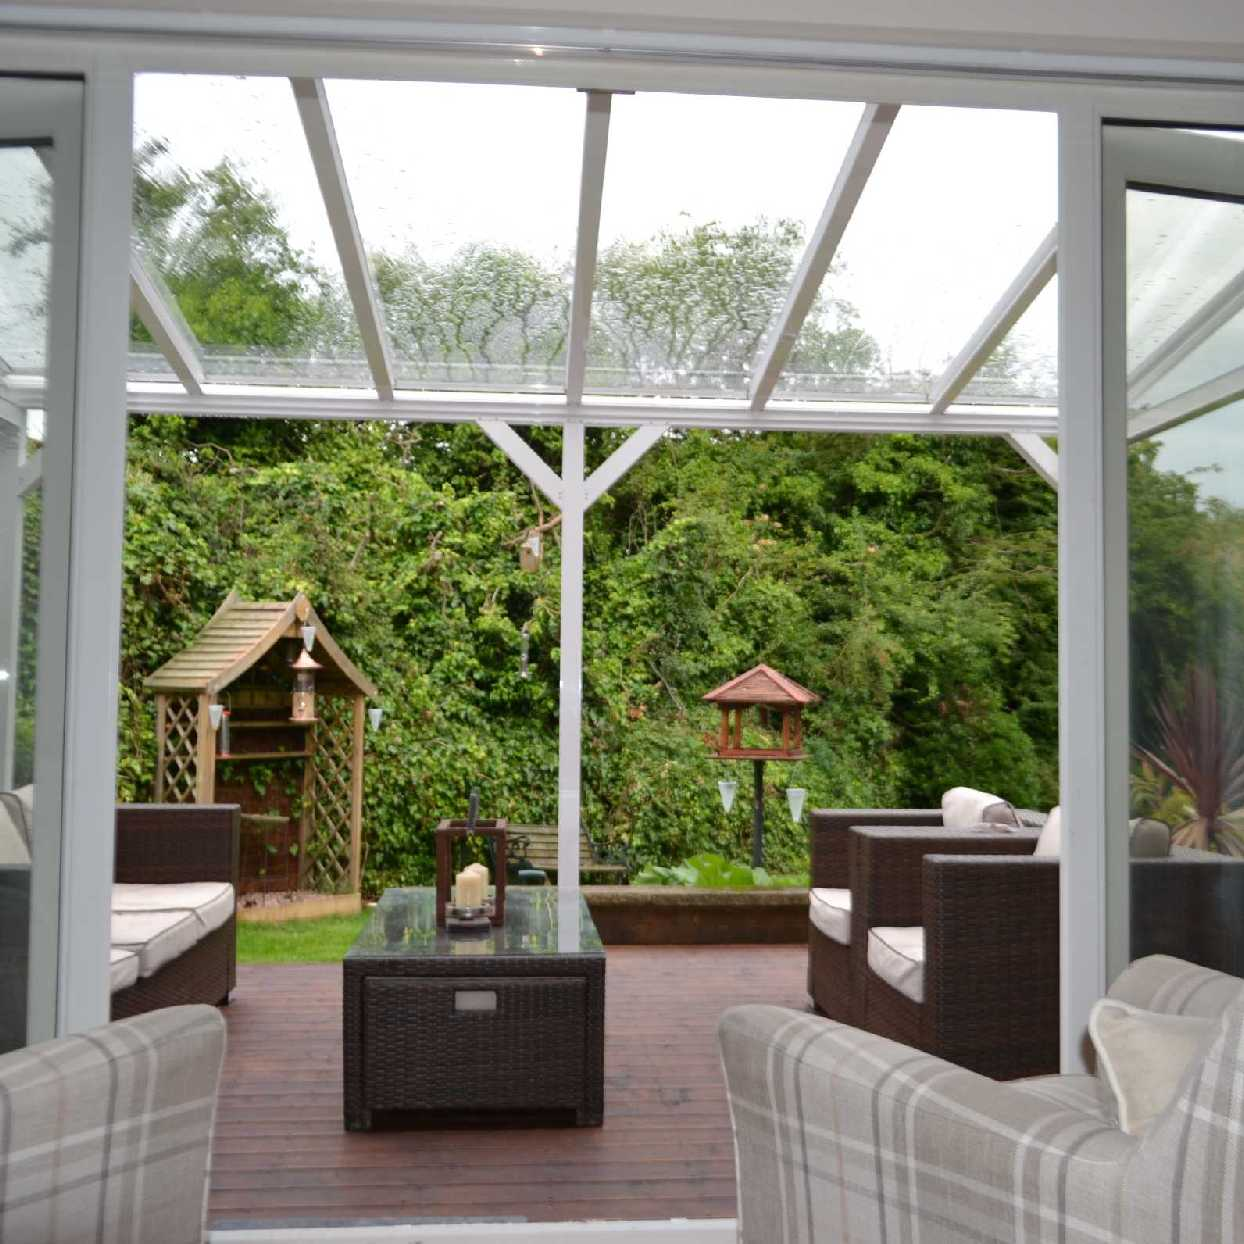 Great selection of Omega Smart White Lean-To Canopy with 6mm Glass Clear Plate Polycarbonate Glazing - 7.0m (W) x 1.5m (P), (4) Supporting Posts